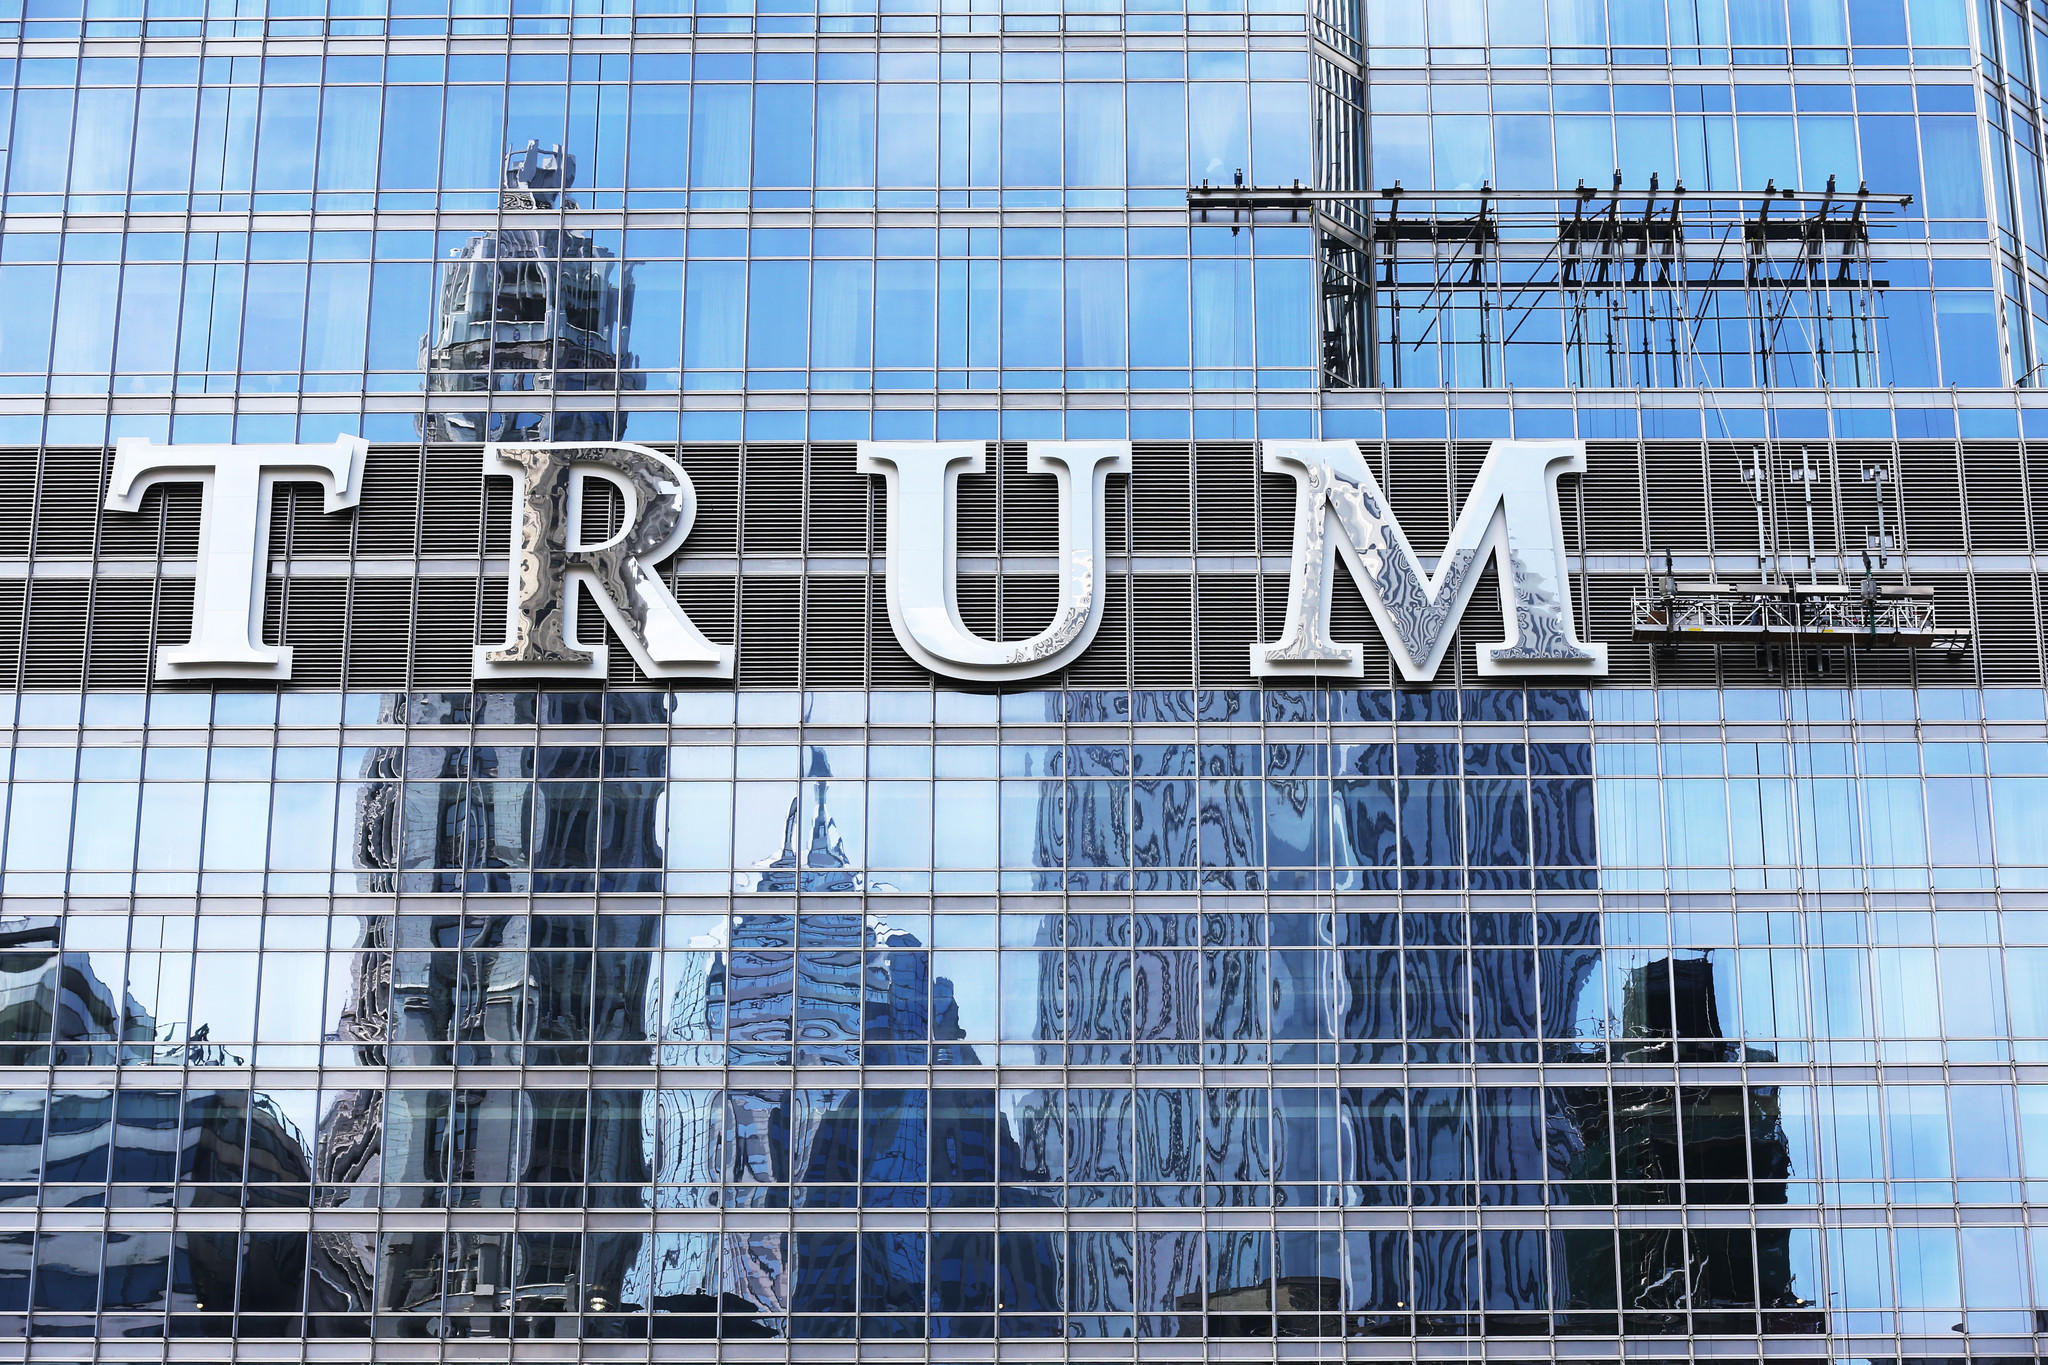 The new Trump sign is nearly complete on the Trump Tower.